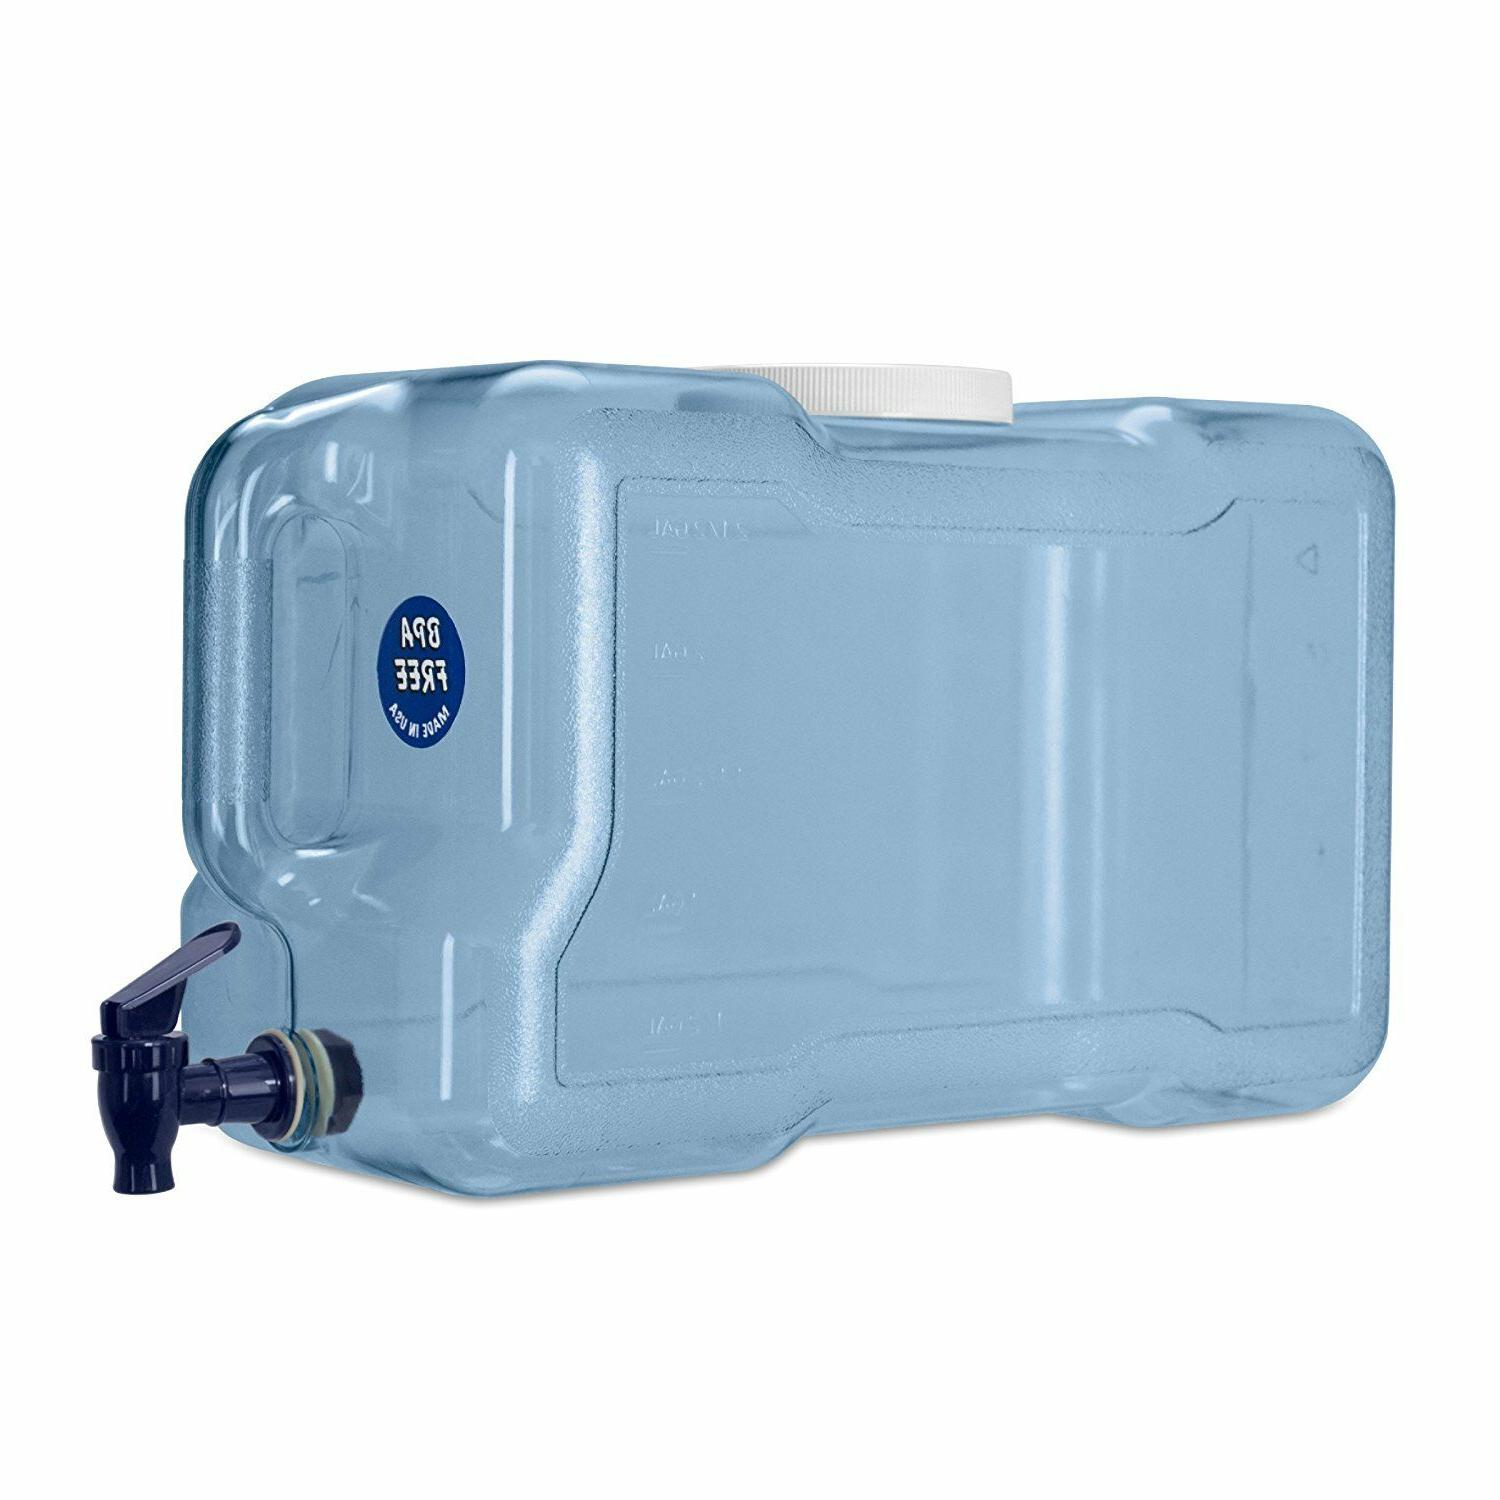 2 gallon refrigerator dispenser drinking water bottle